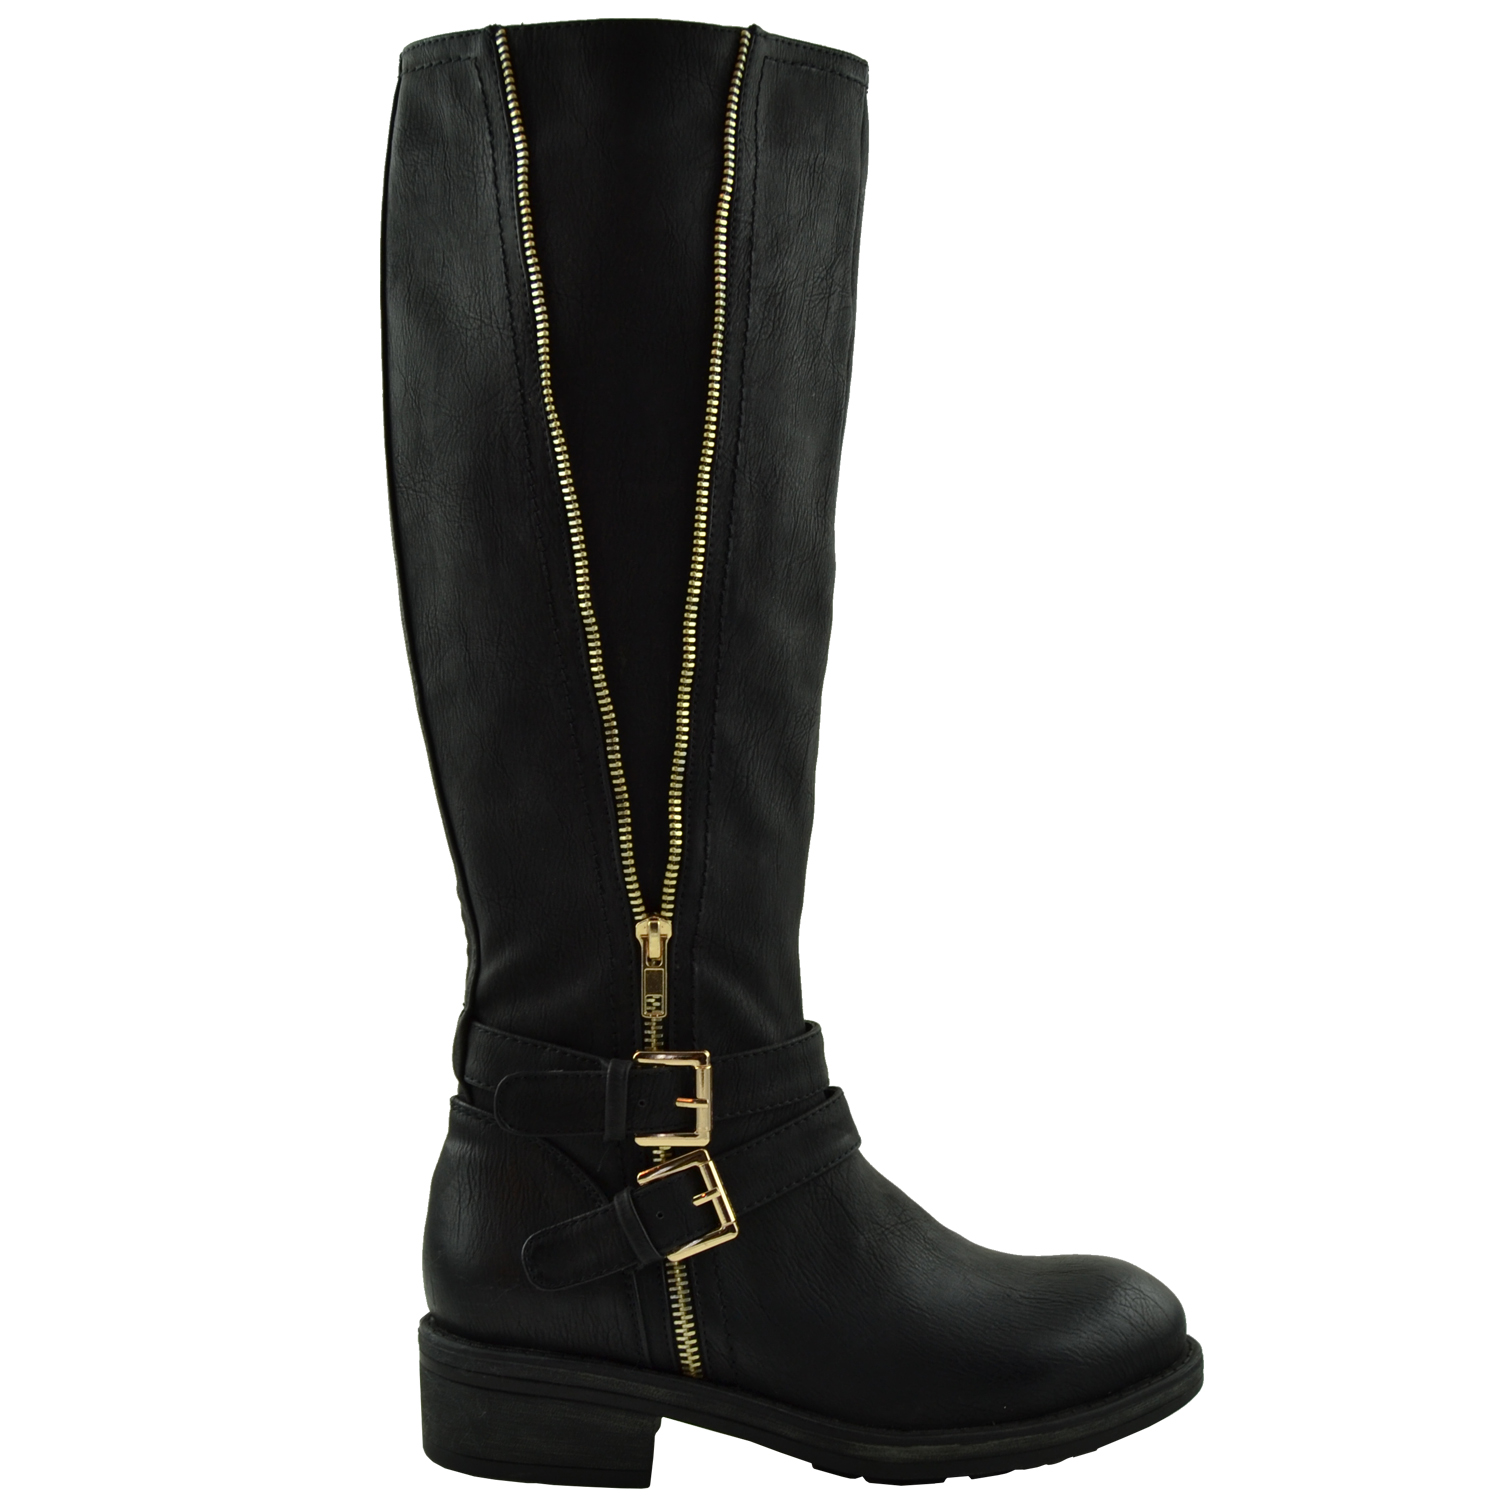 Tan Knee High Ring Strap Boots